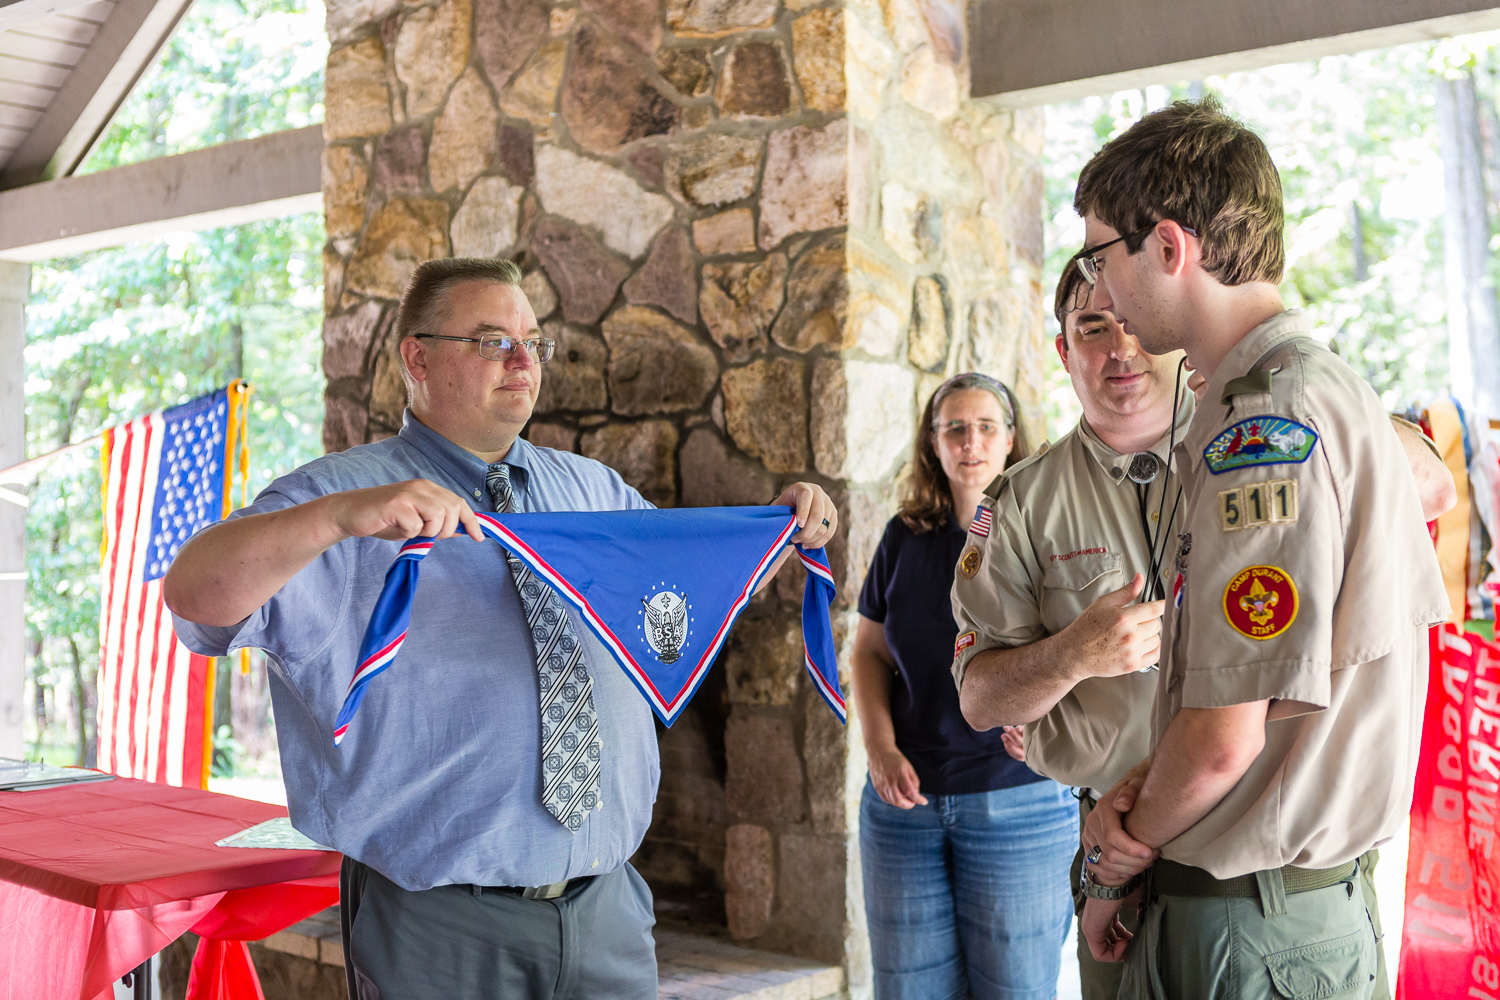 eagle-scout-ceremony-11.jpg